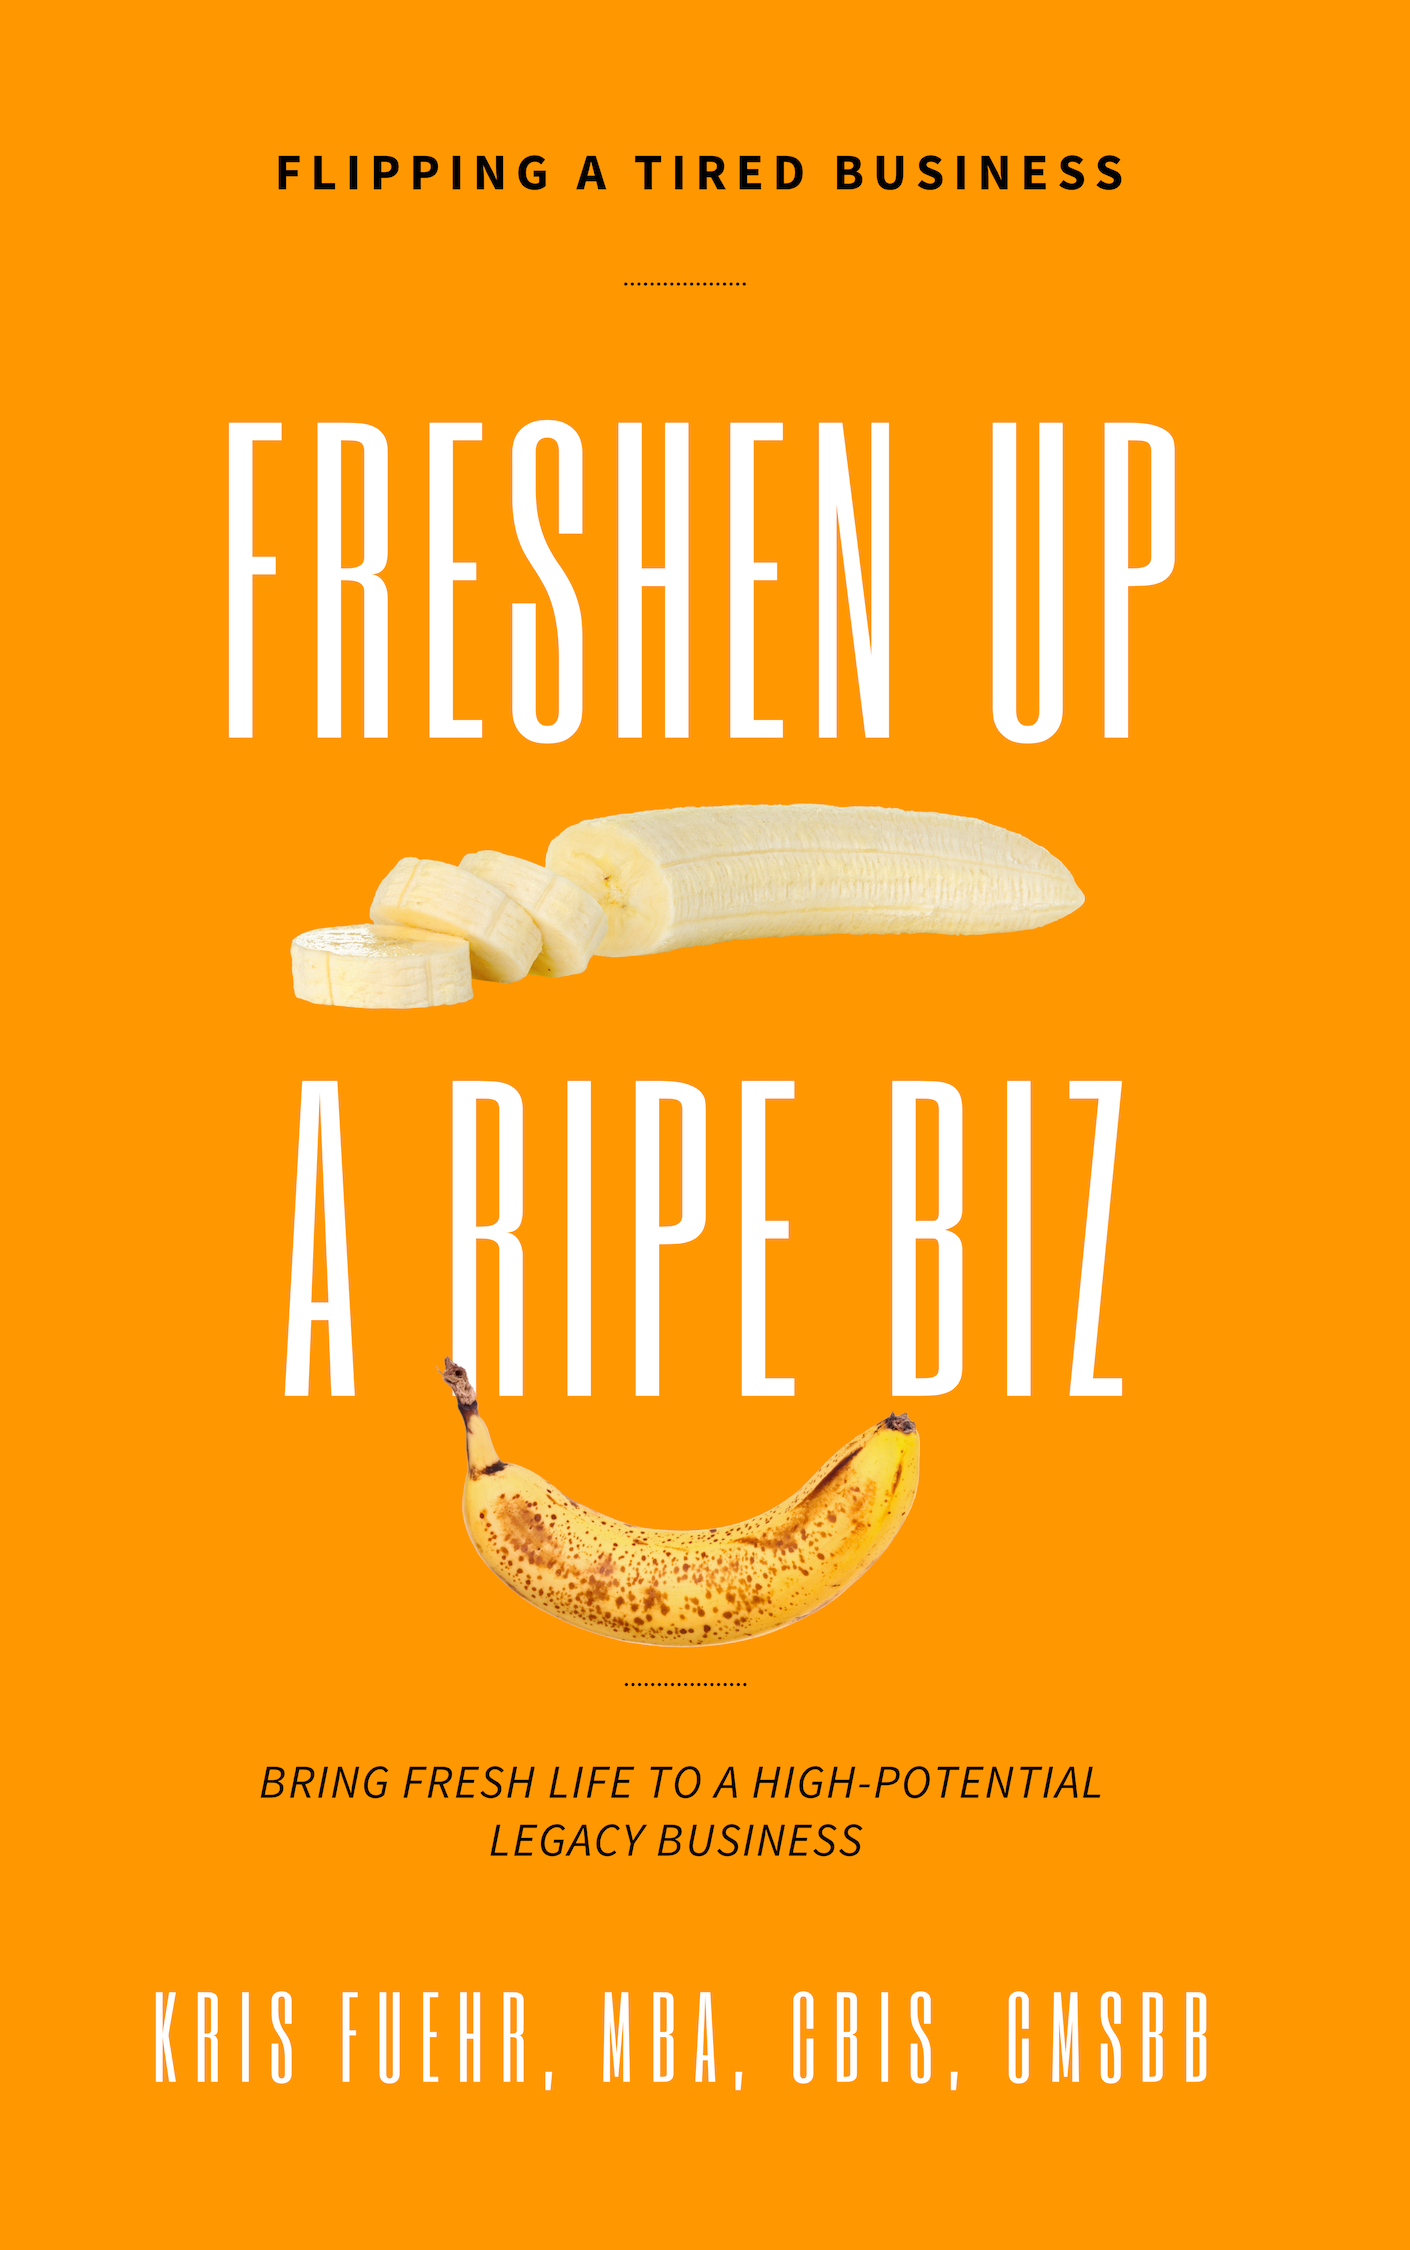 Freshen up a Ripe Biz: Flipping a Business eBook